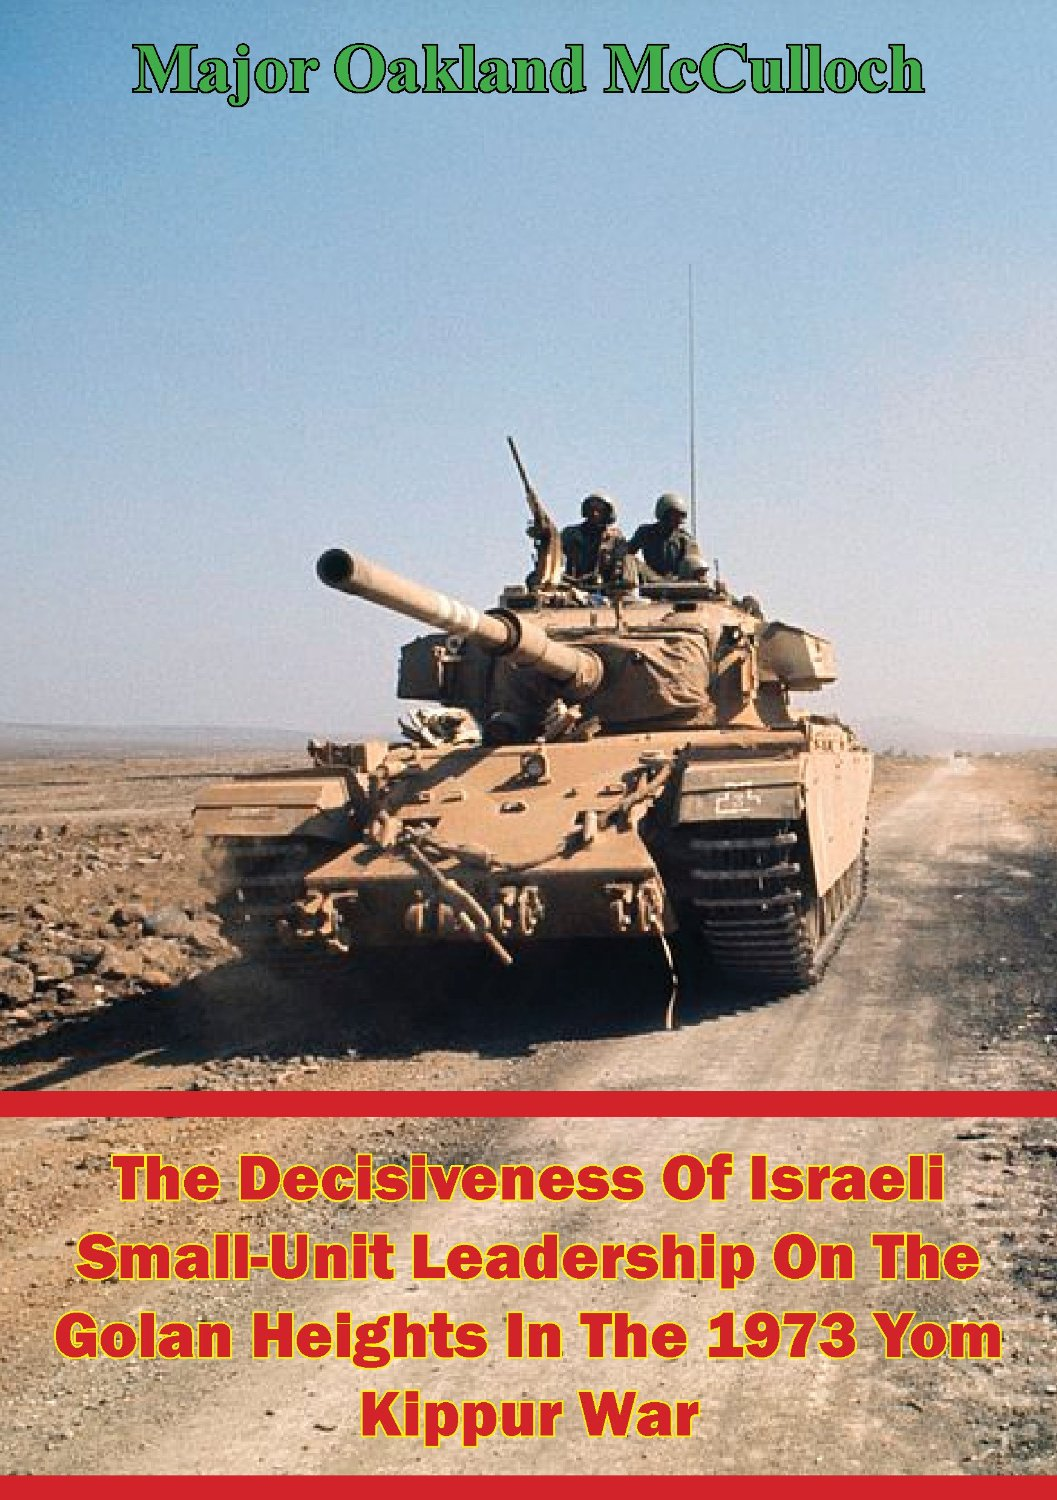 The Decisiveness Of Israeli Small-Unit Leadership On The Golan Heights In The 1973 Yom Kippur War free download